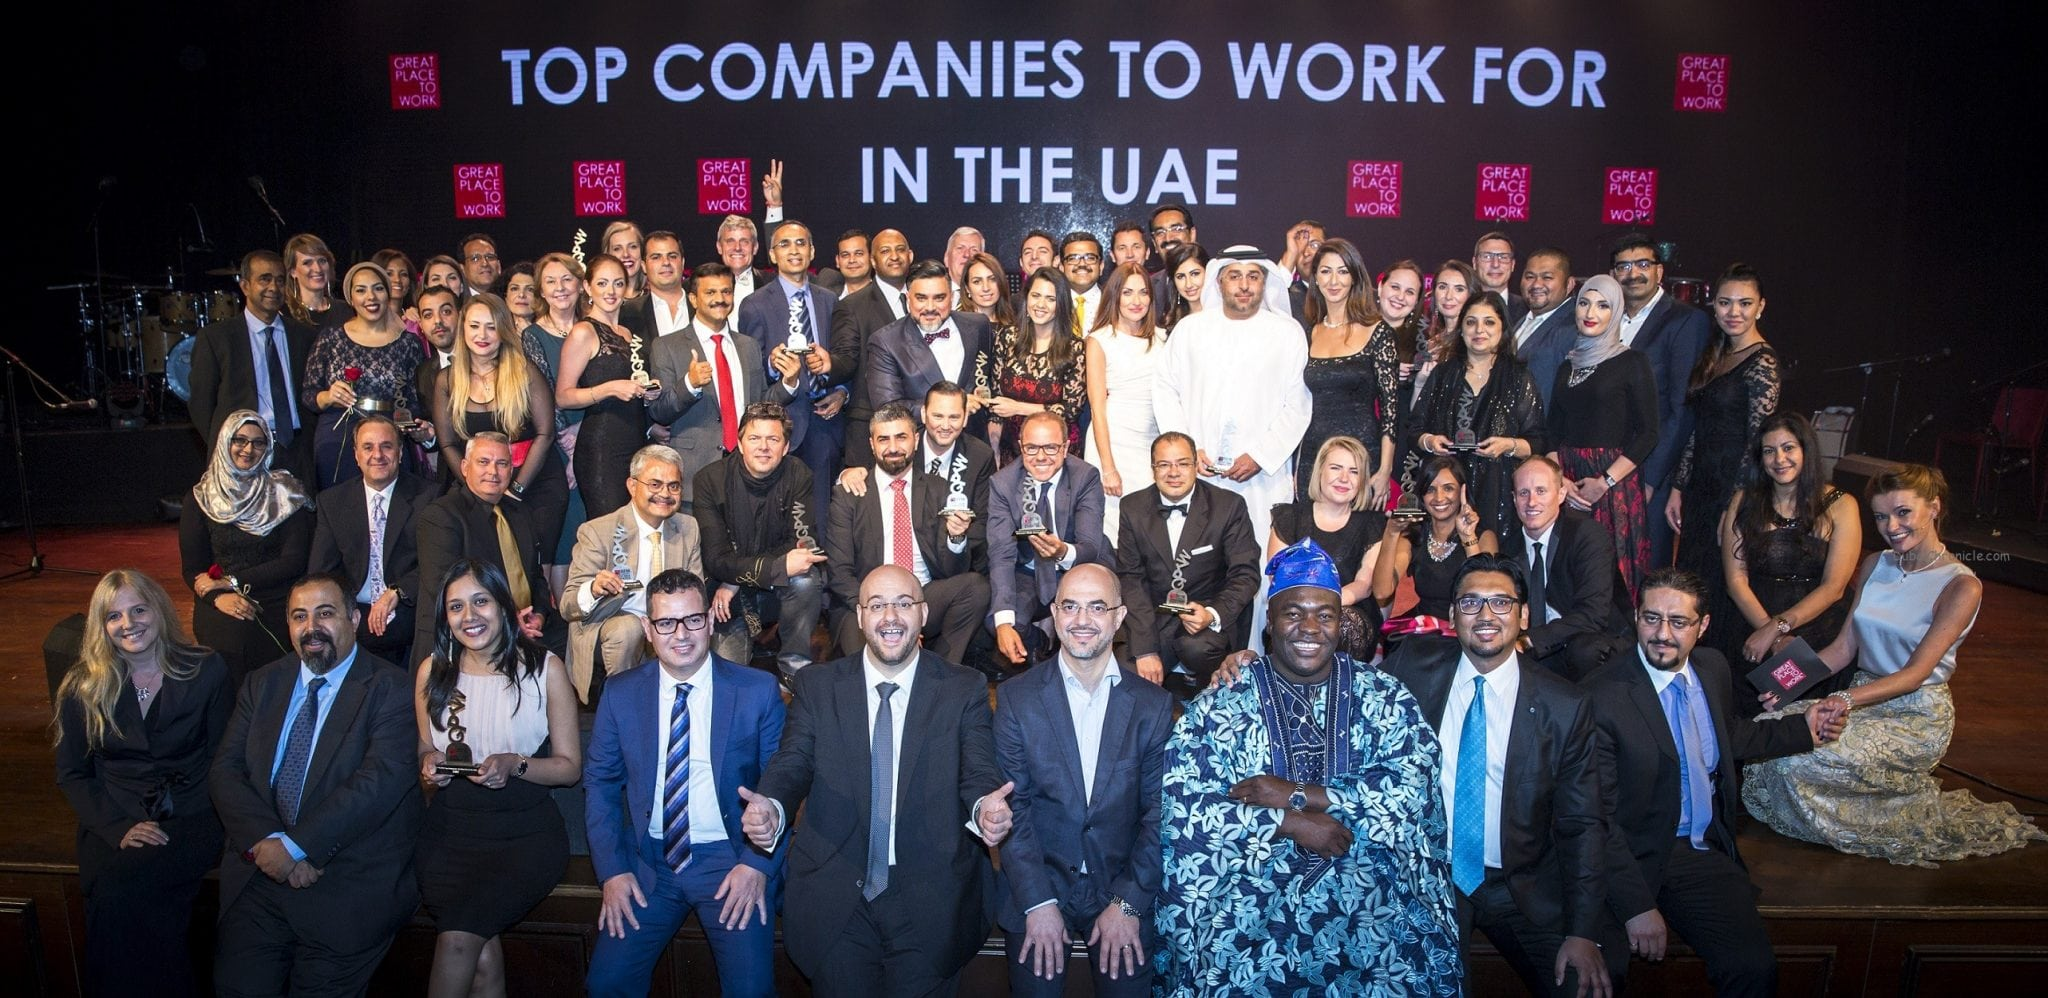 The Top 20 Companies to Work For in the UAE